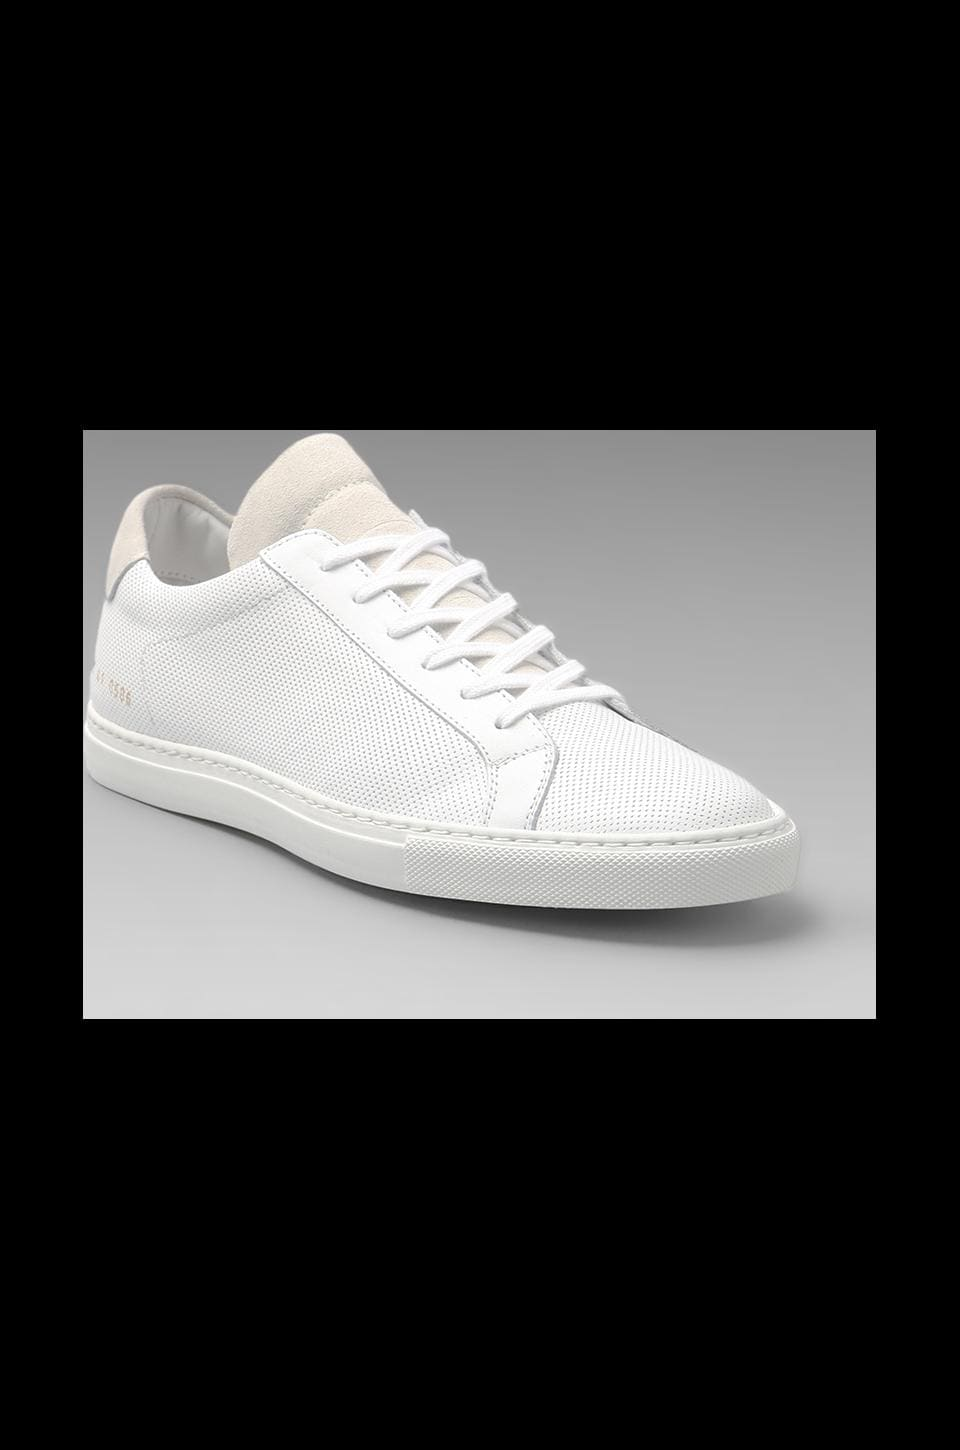 Common Projects Summer Edition Perforated in White